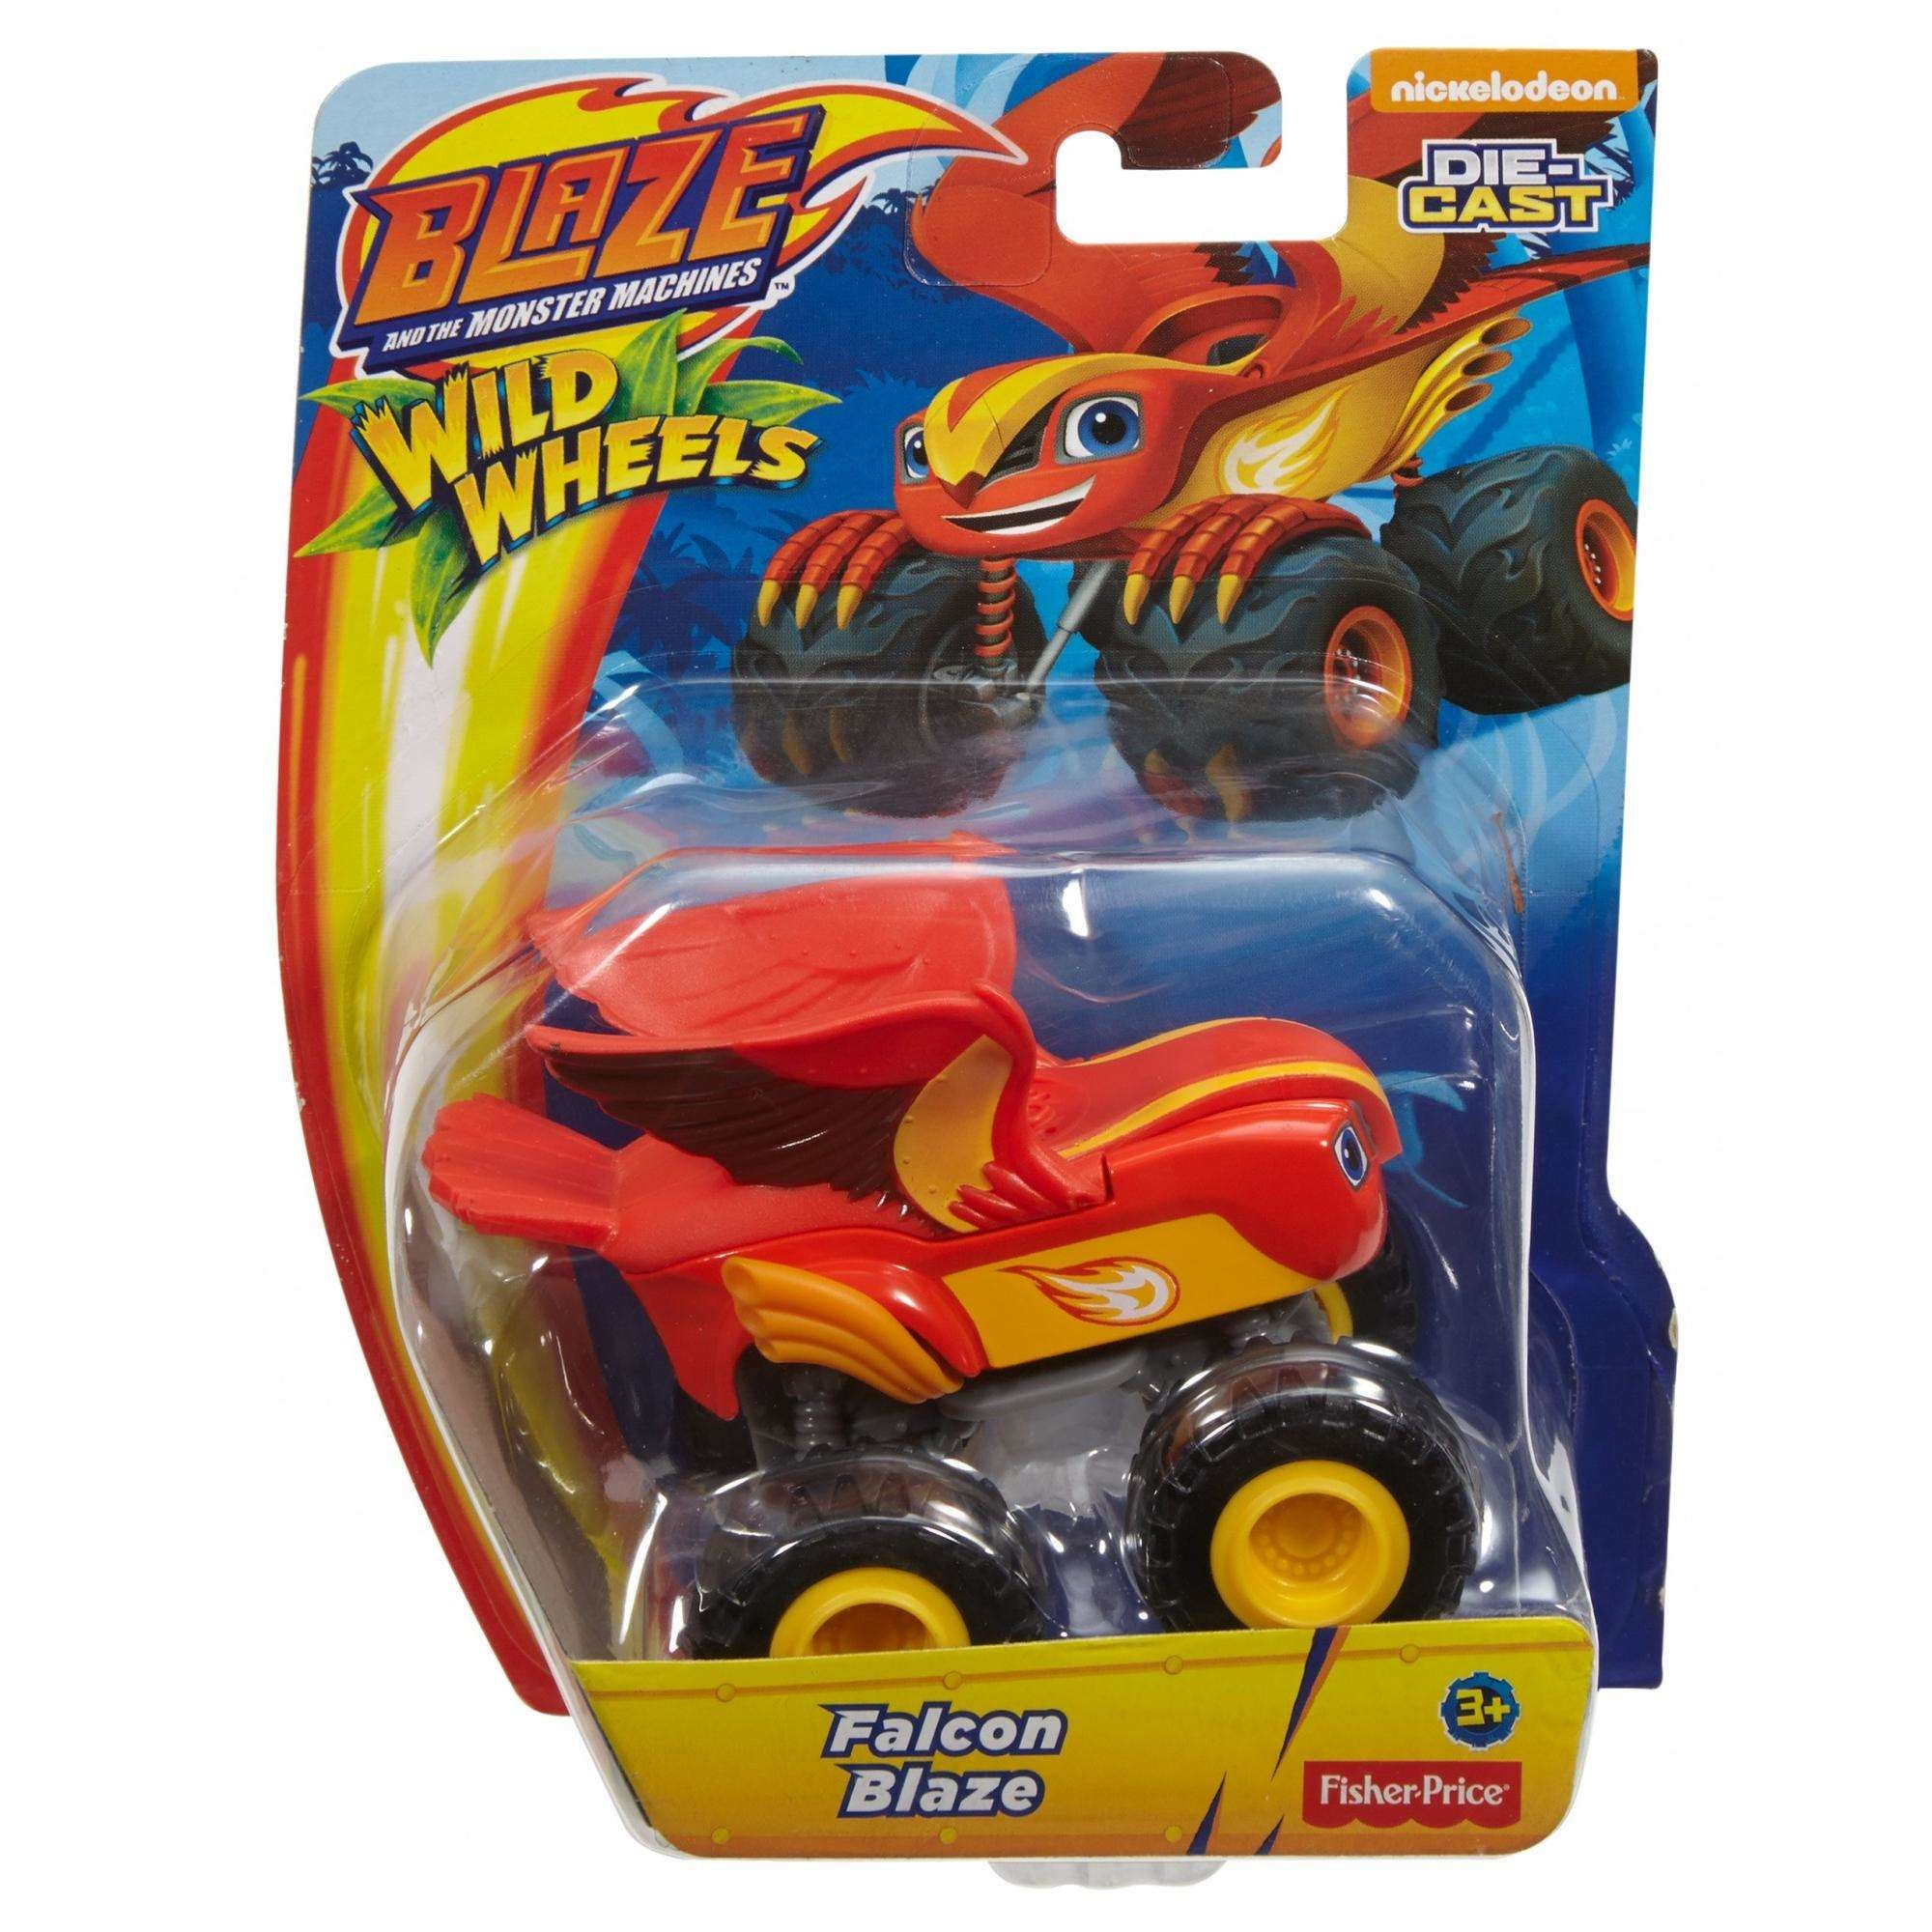 Nickelodeon Blaze and the Monster Machines Blaze Vehicle Assortment